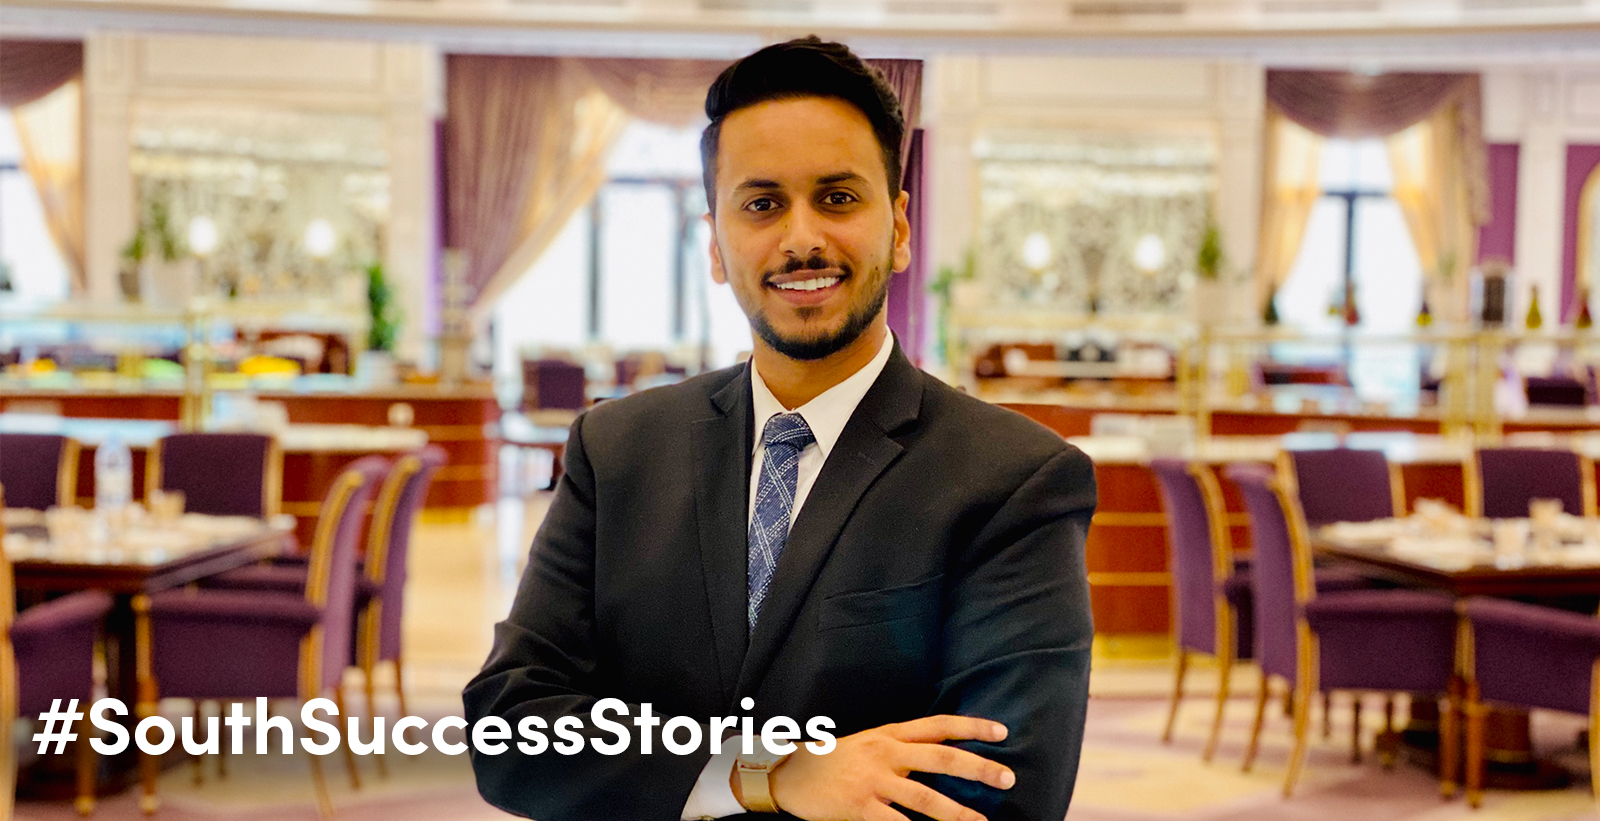 "Raed Alsulami, a University of South Alabama graduate in hospitality and tourism management and assistant manager for the main restaurant at the Ritz-Carlton Hotel in Riyadh, Saudi Arabia, credits his experiences as a student for his current success. ""I feel that the program at USA helped me get to where I am today and provided opportunities for me to maximize my goals in the industry,"" he said."